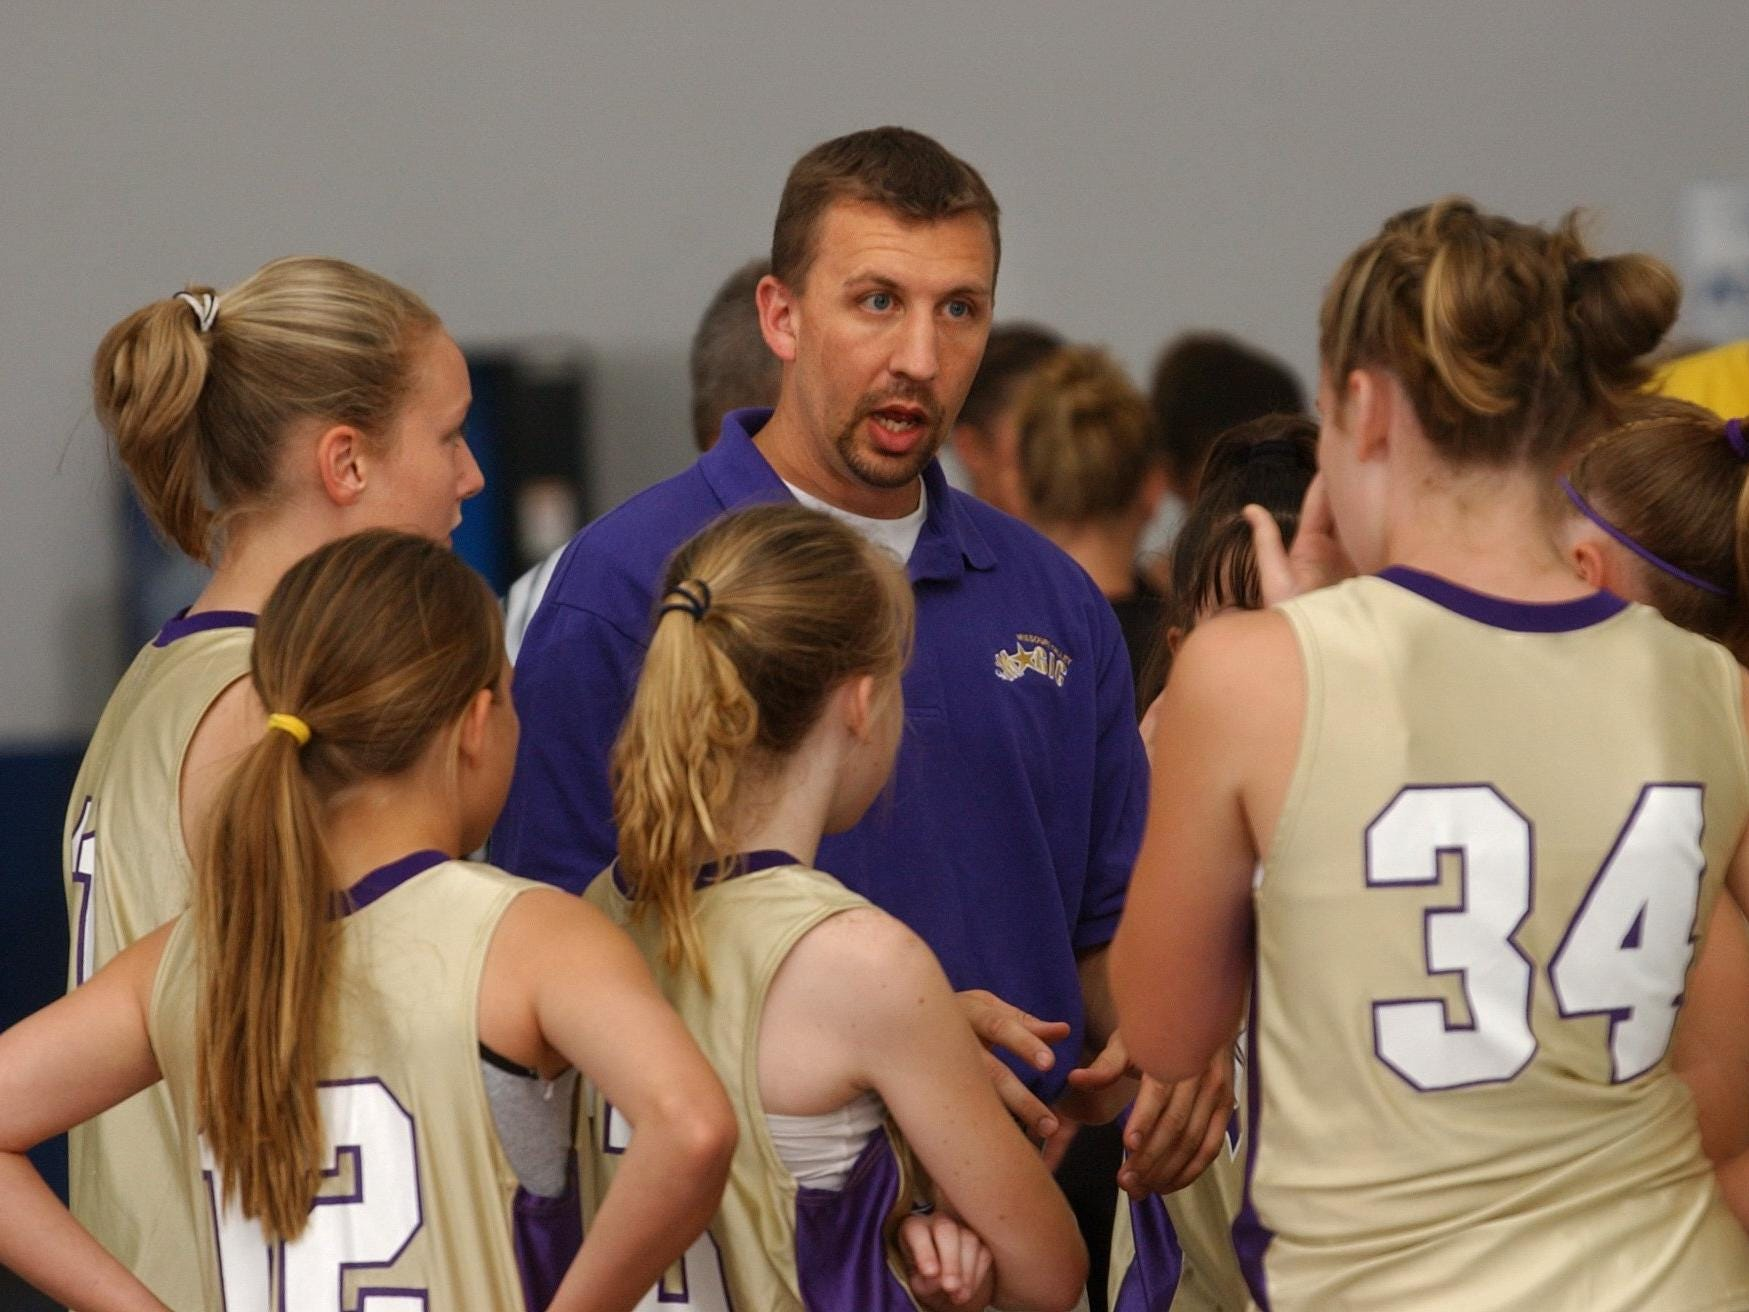 Magic coach Doug Heppler talks to his team before playing their game at The Courts in 2003.